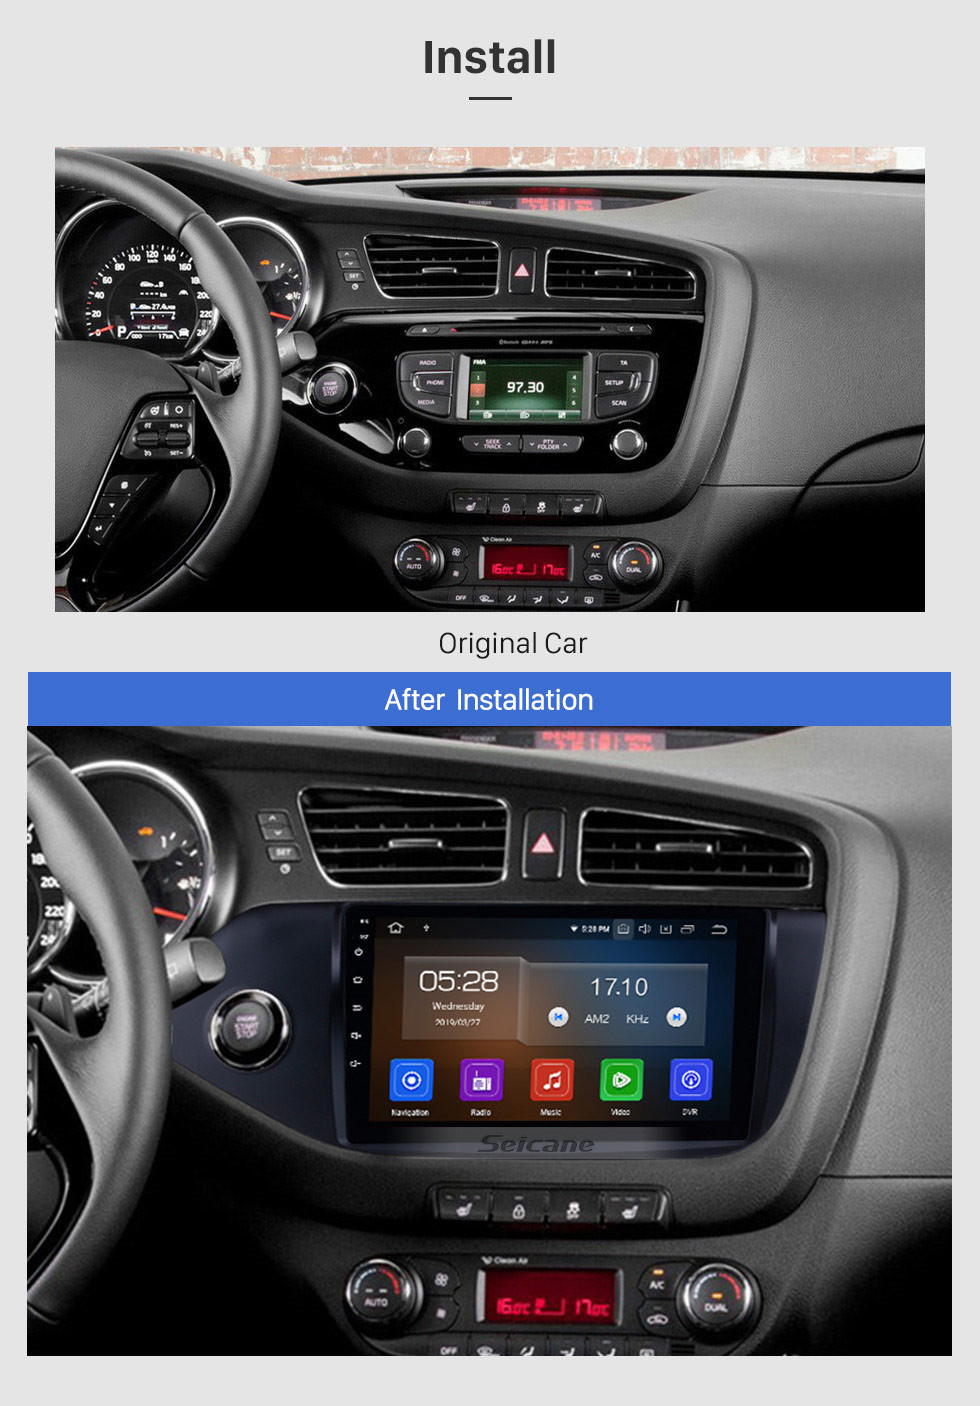 Seicane 9 Inch Android 10.0 2012 2013 2014 KIA CEED GPS Bluetooth Radio Car Stereo with Mirror Link Reverse Camera Wheel Steering Control USB SD AUX